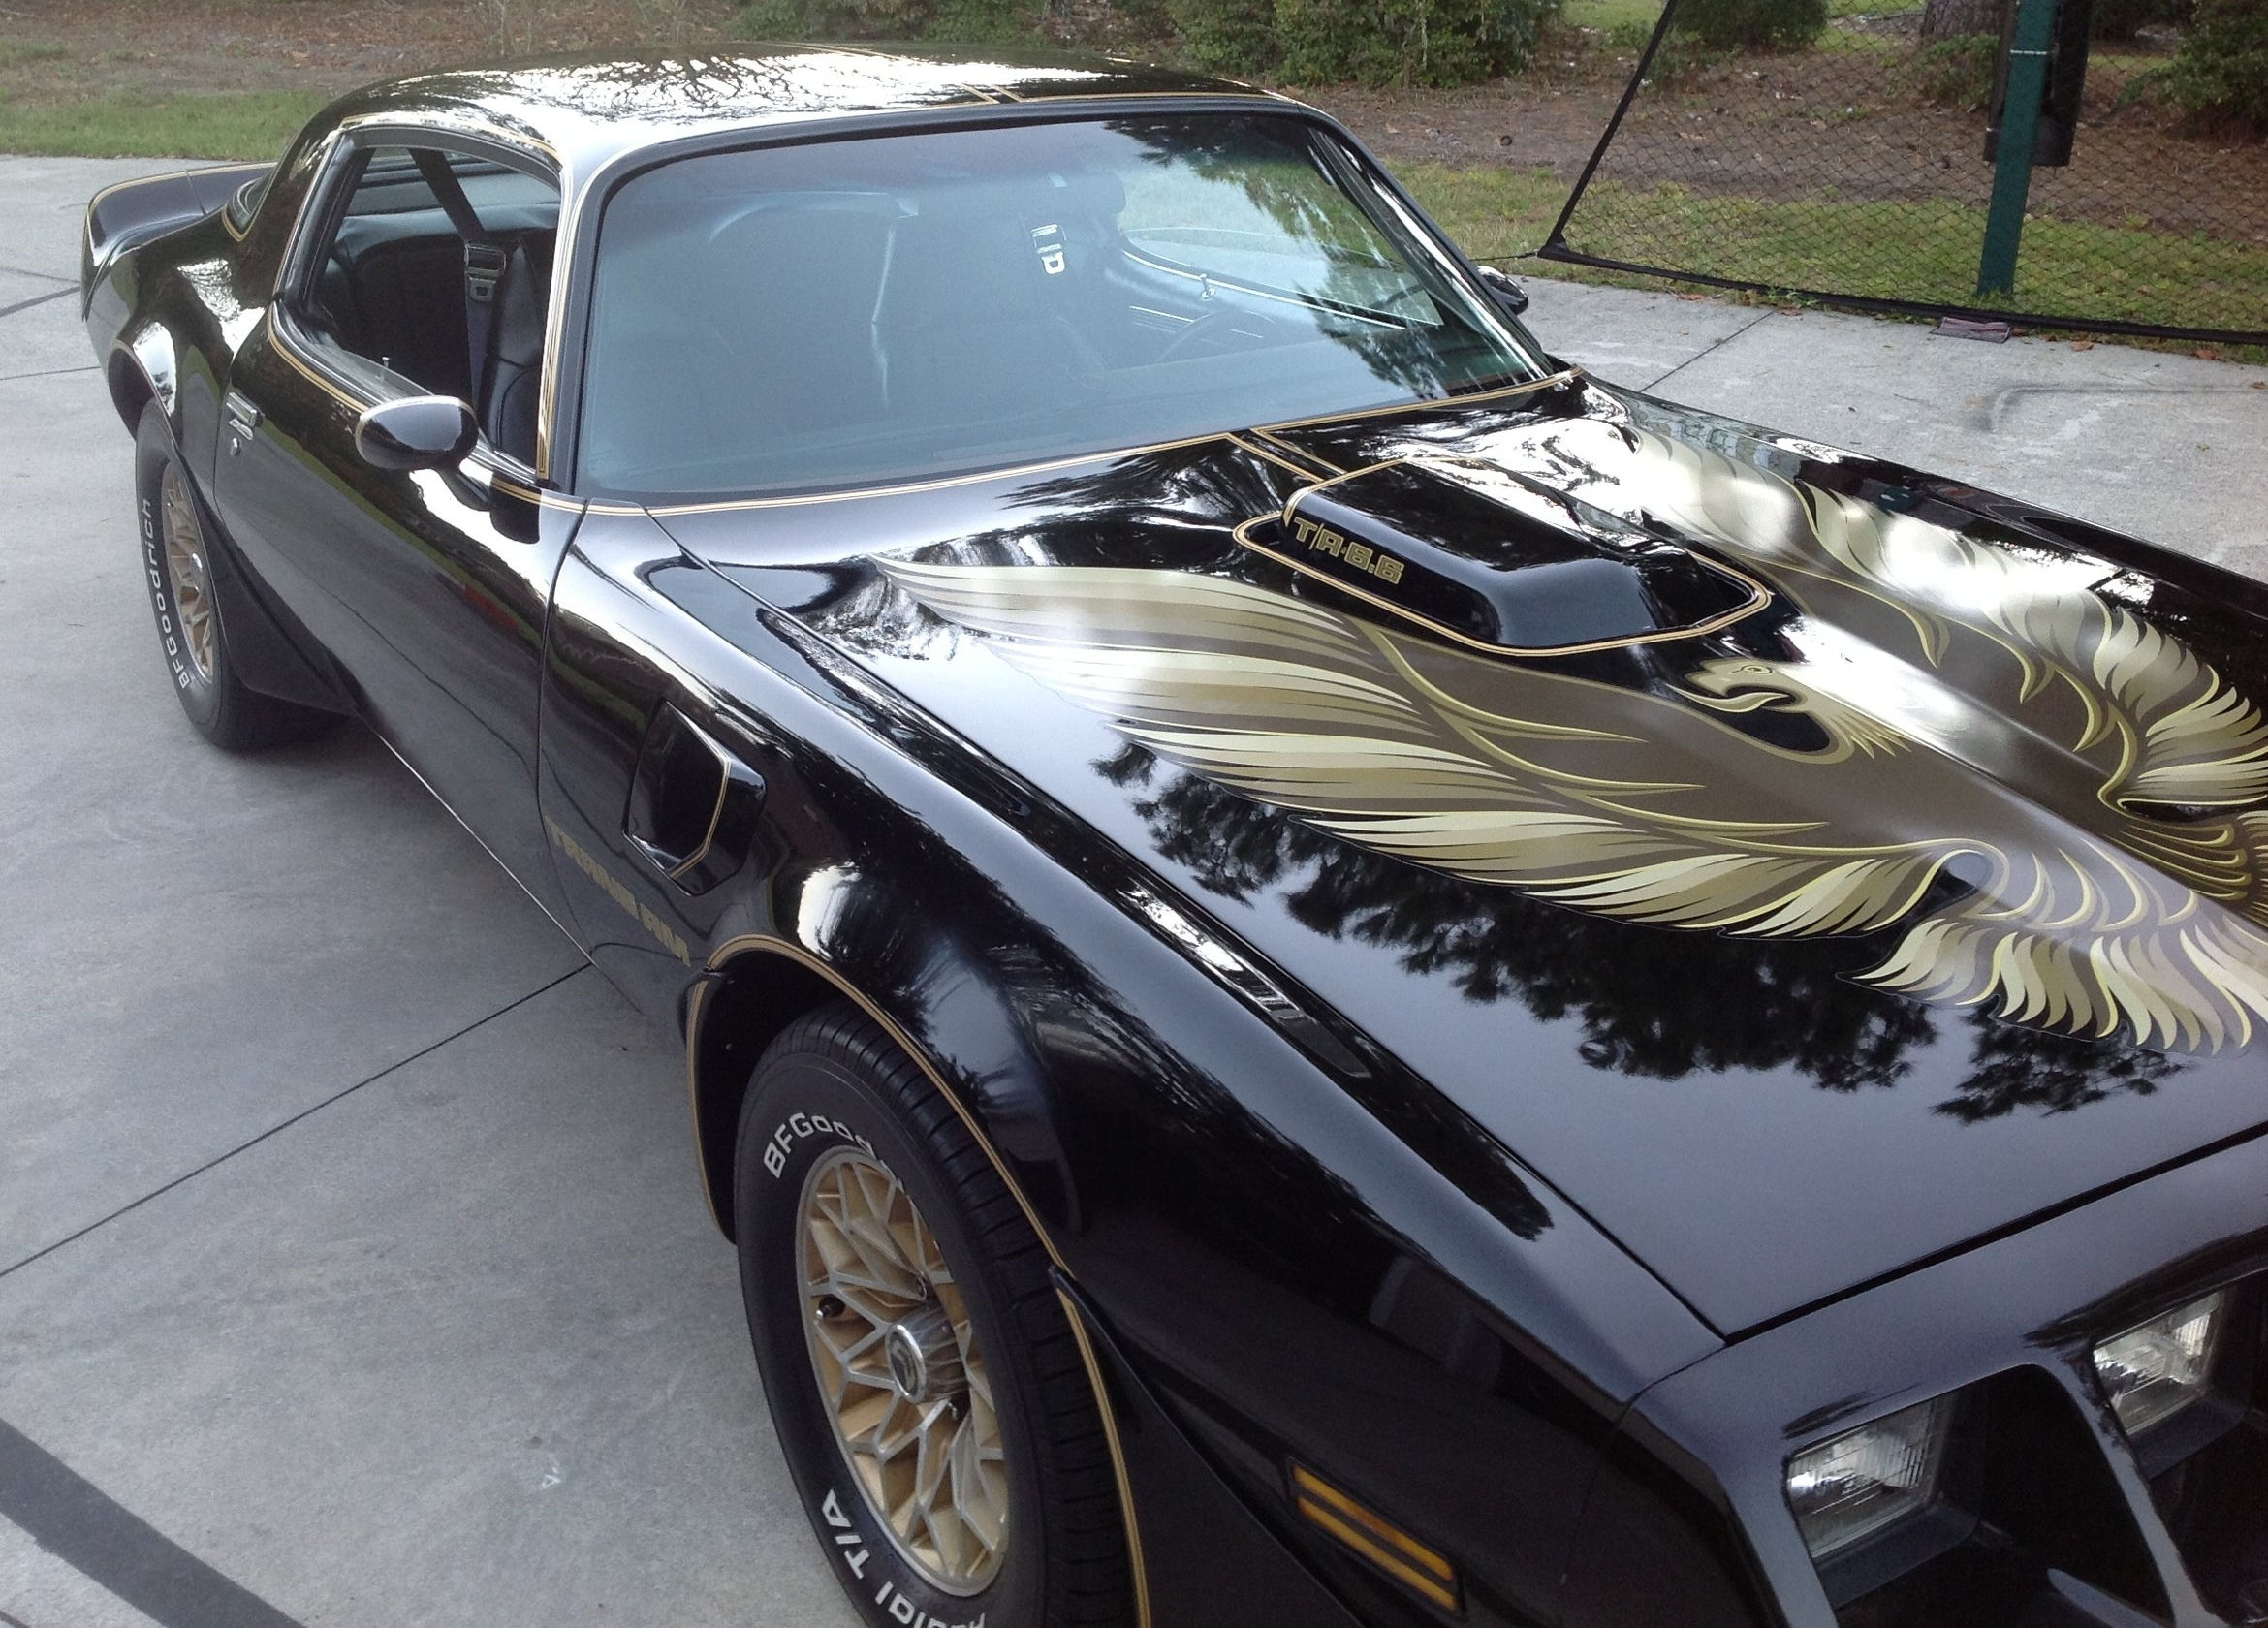 1979 Pontiac Trans Am with The Pontiac 400 - One of the first Classic Cars we restored - All original parts